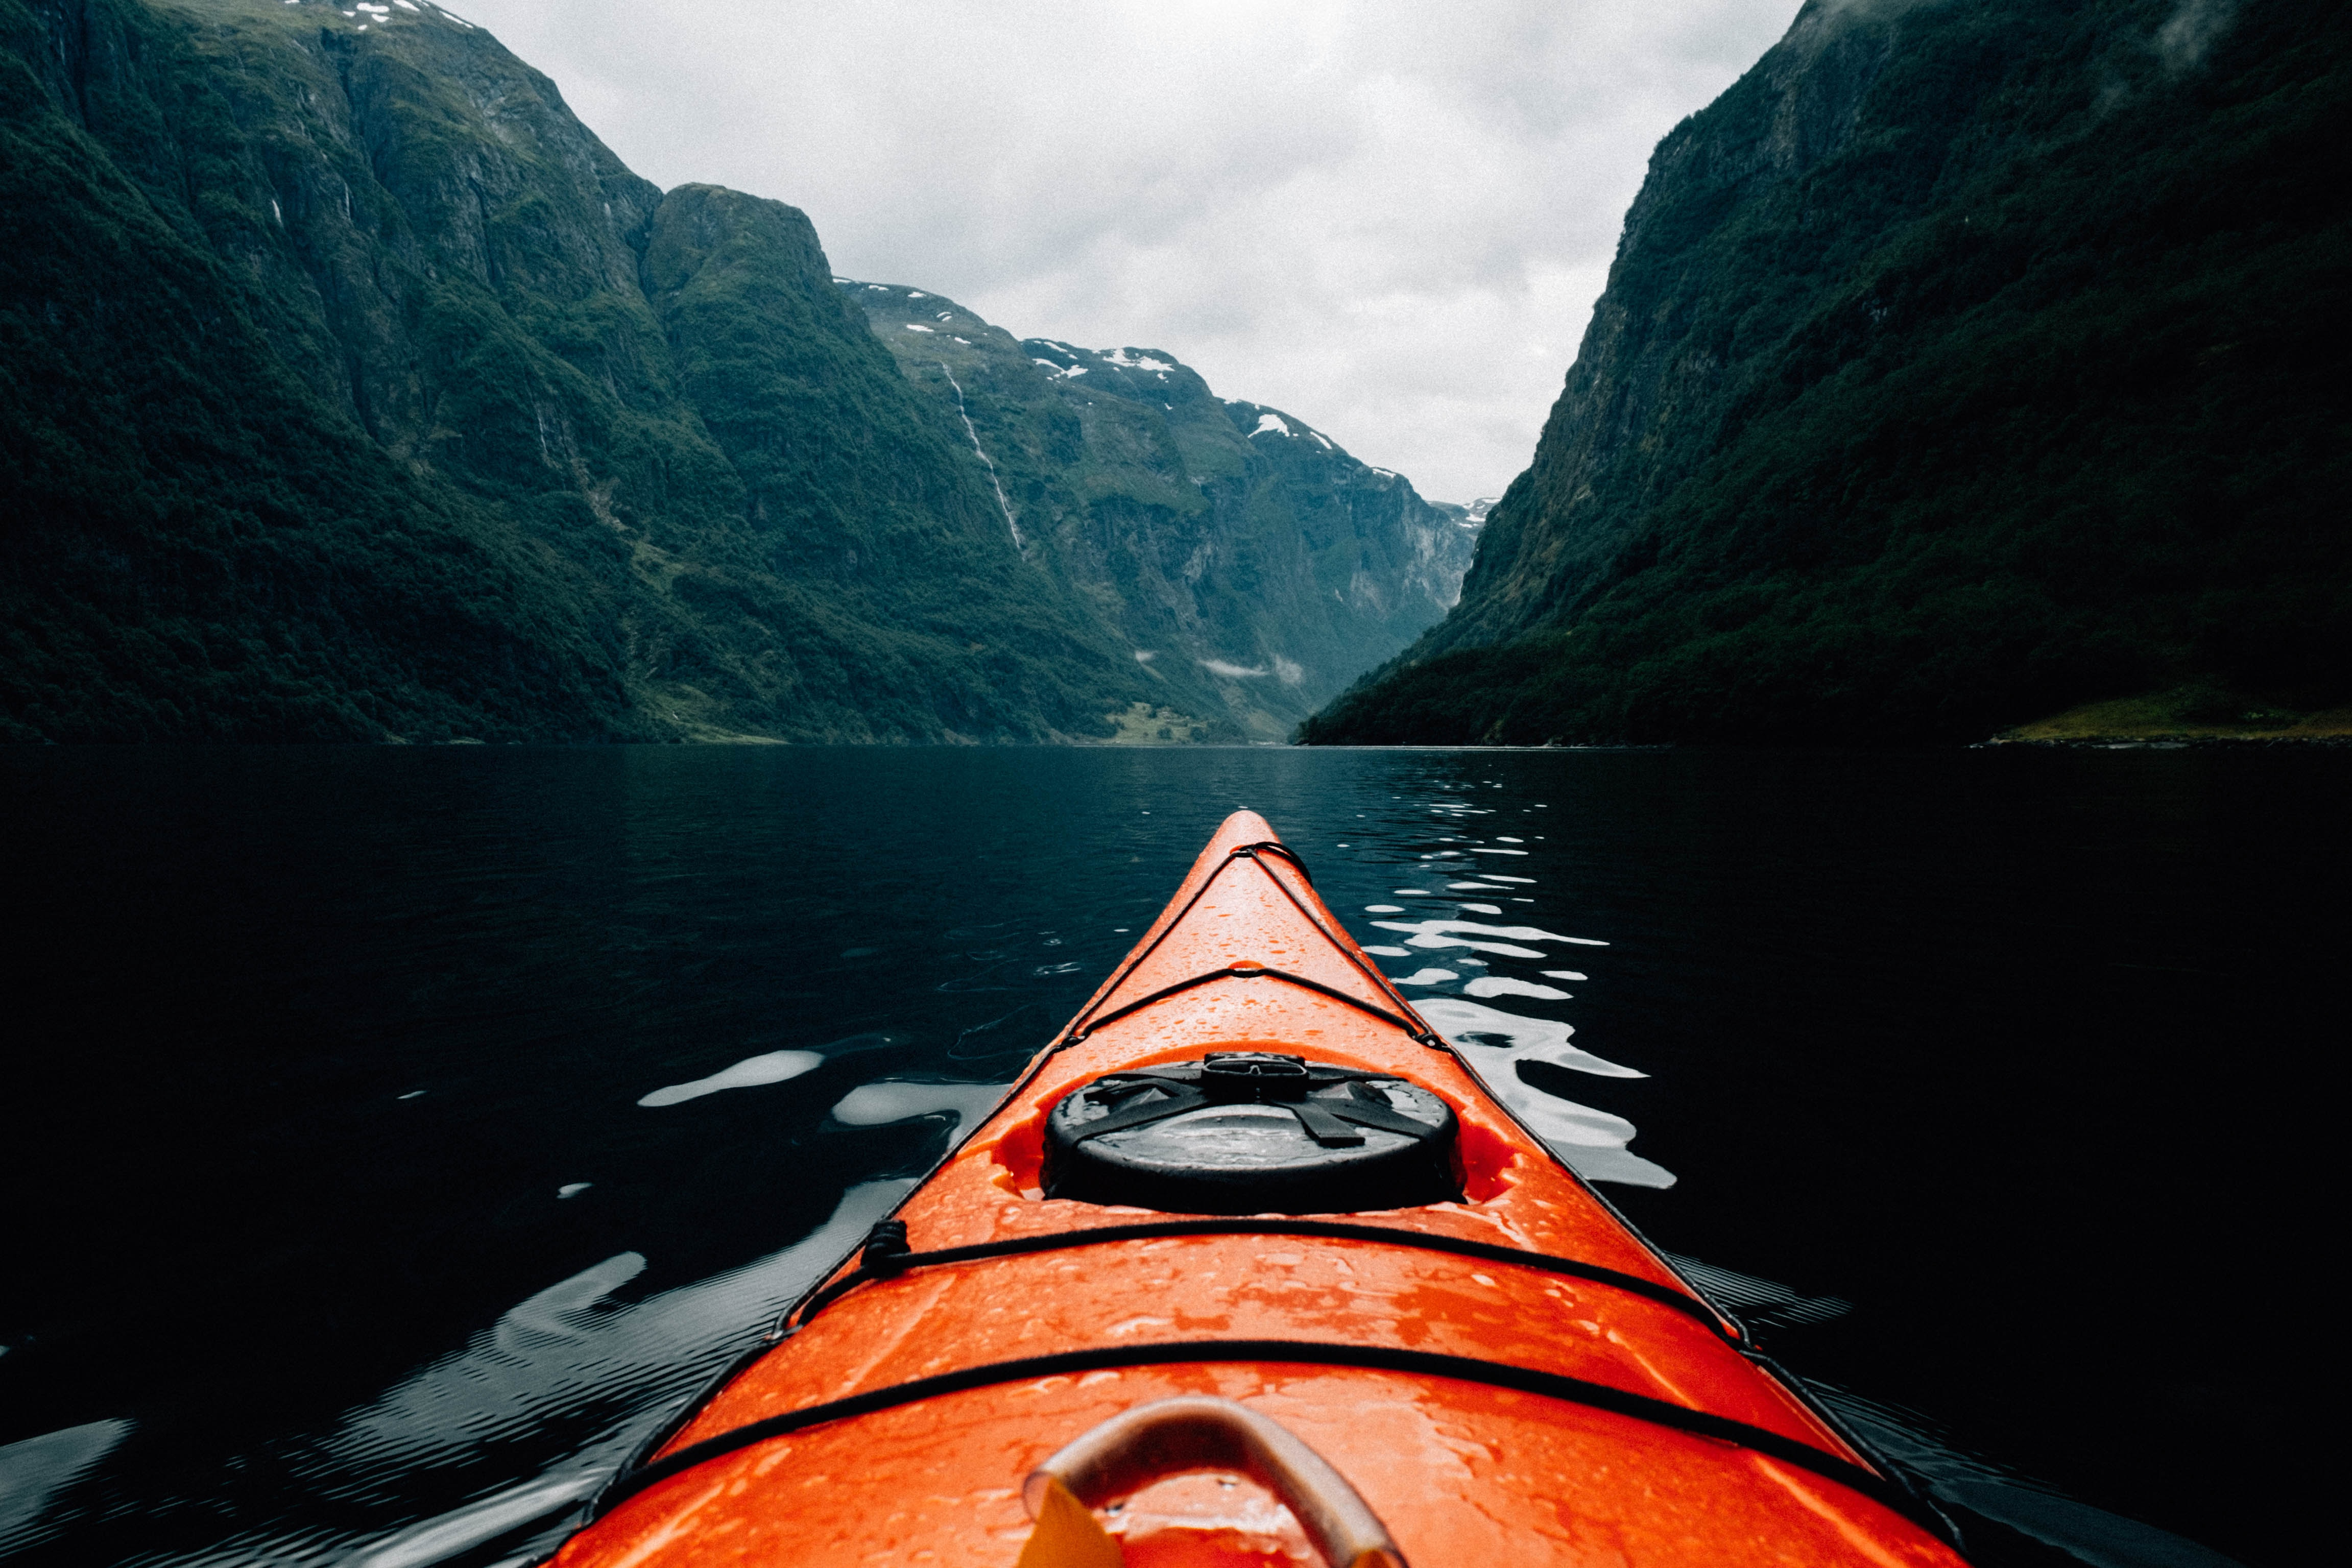 Kayaking experience in the fjords